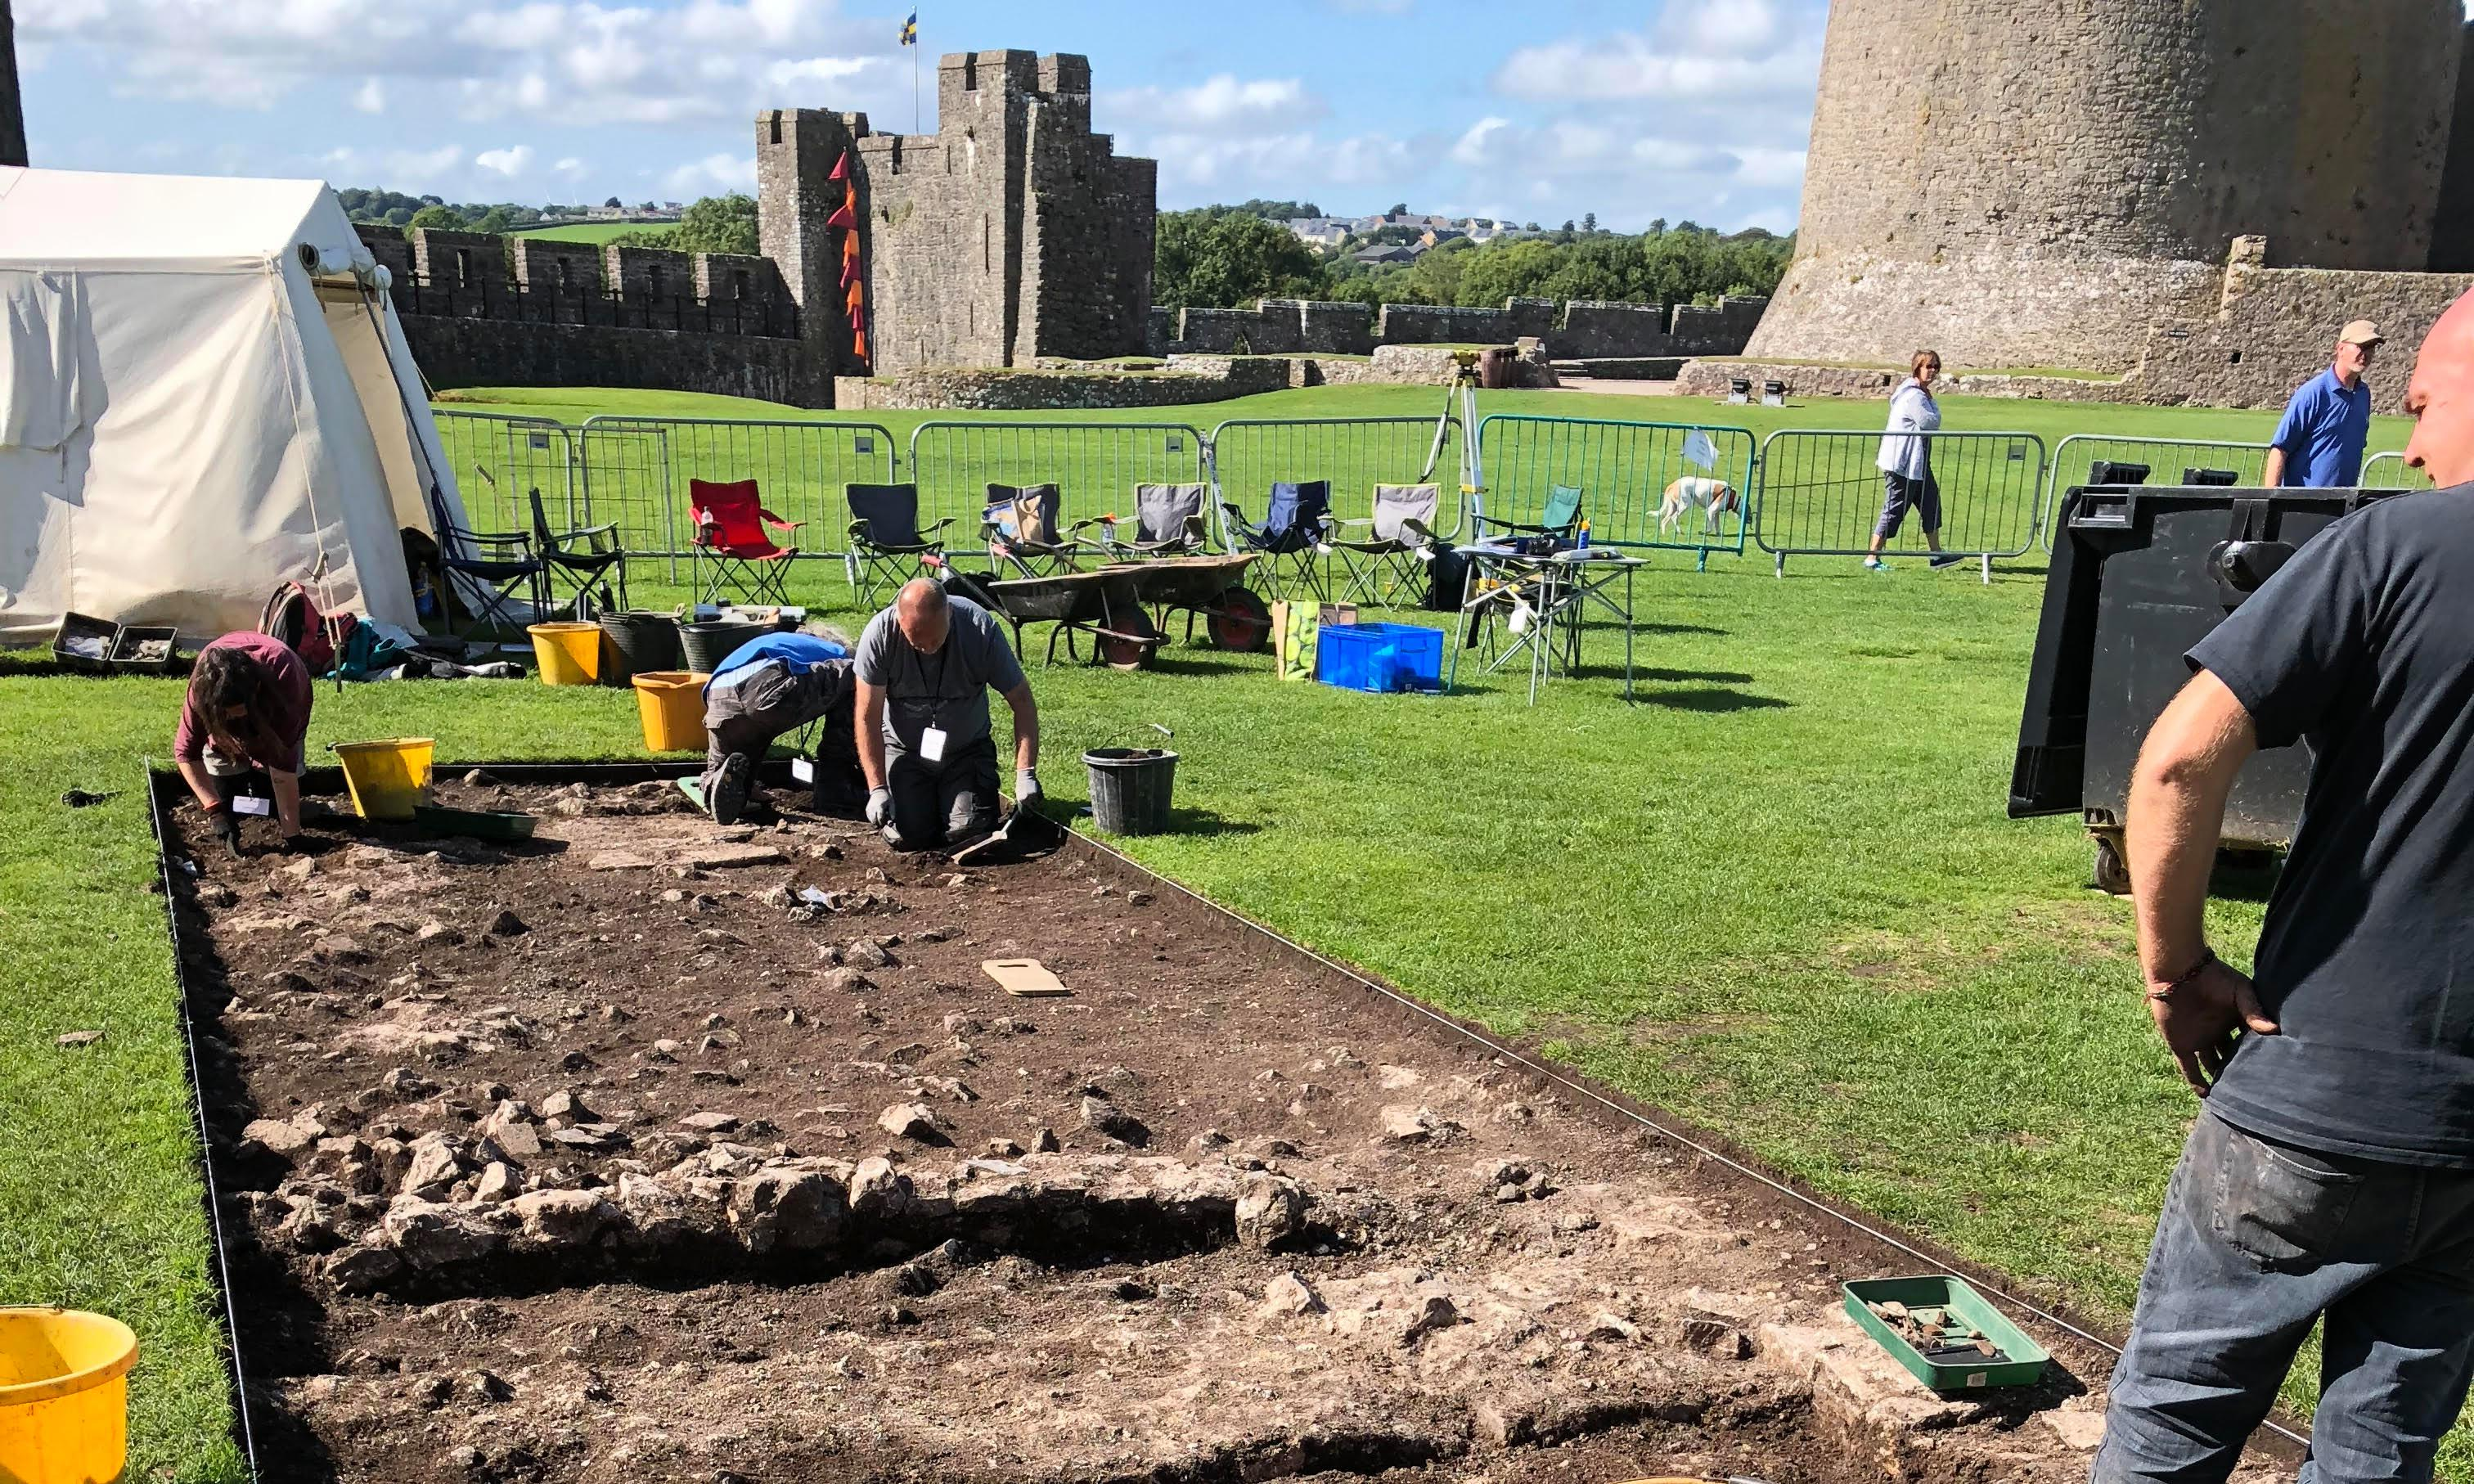 Likely birthplace of Henry VII found in Pembroke Castle